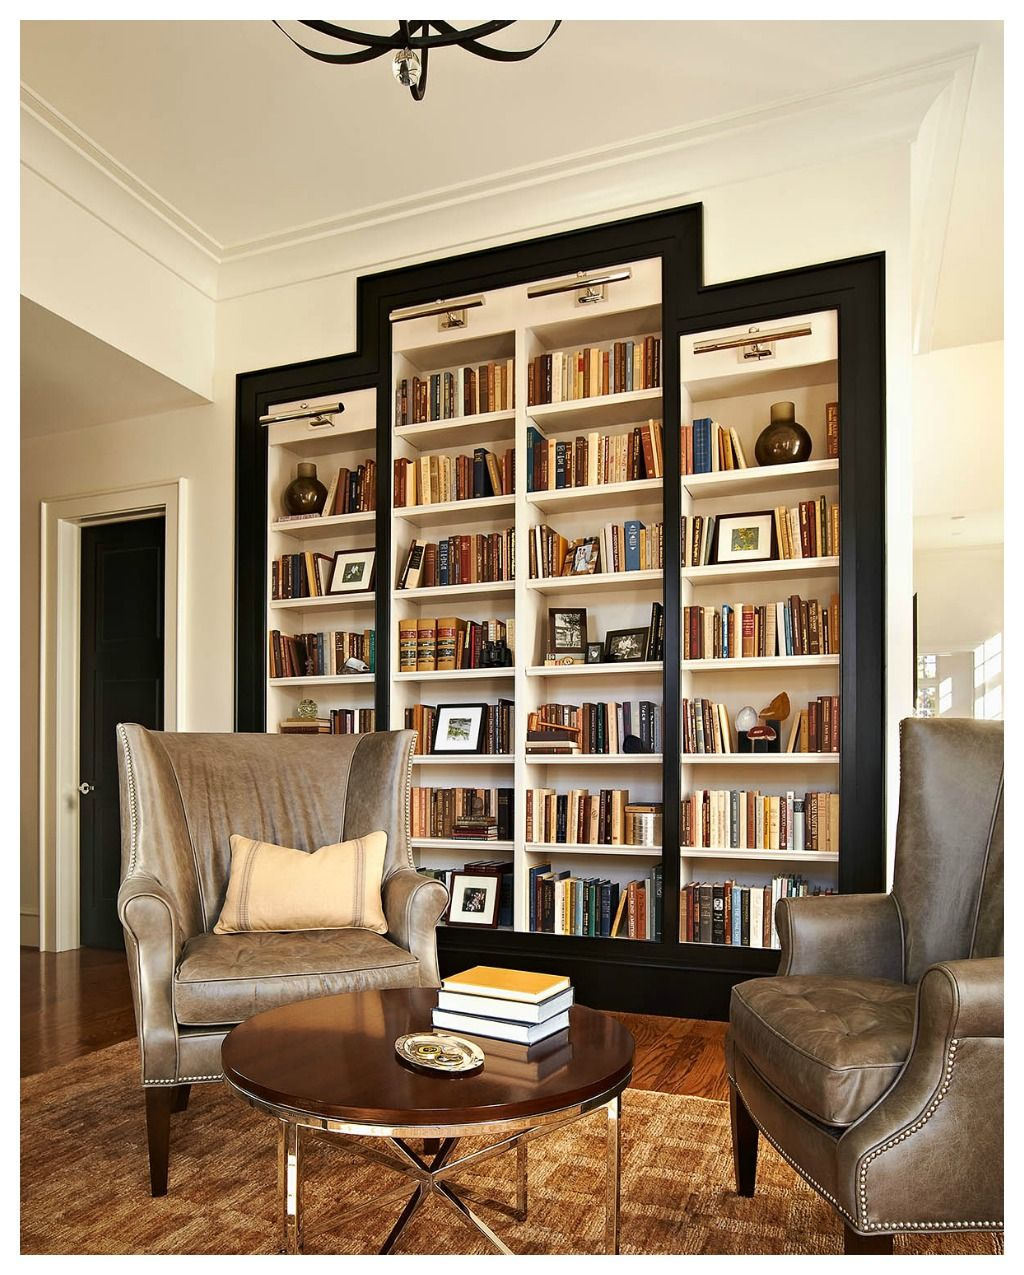 Bookshelves Study At Ncstate Chancelloru0027s House Design Lines Ltd. Raleigh  Interior Design